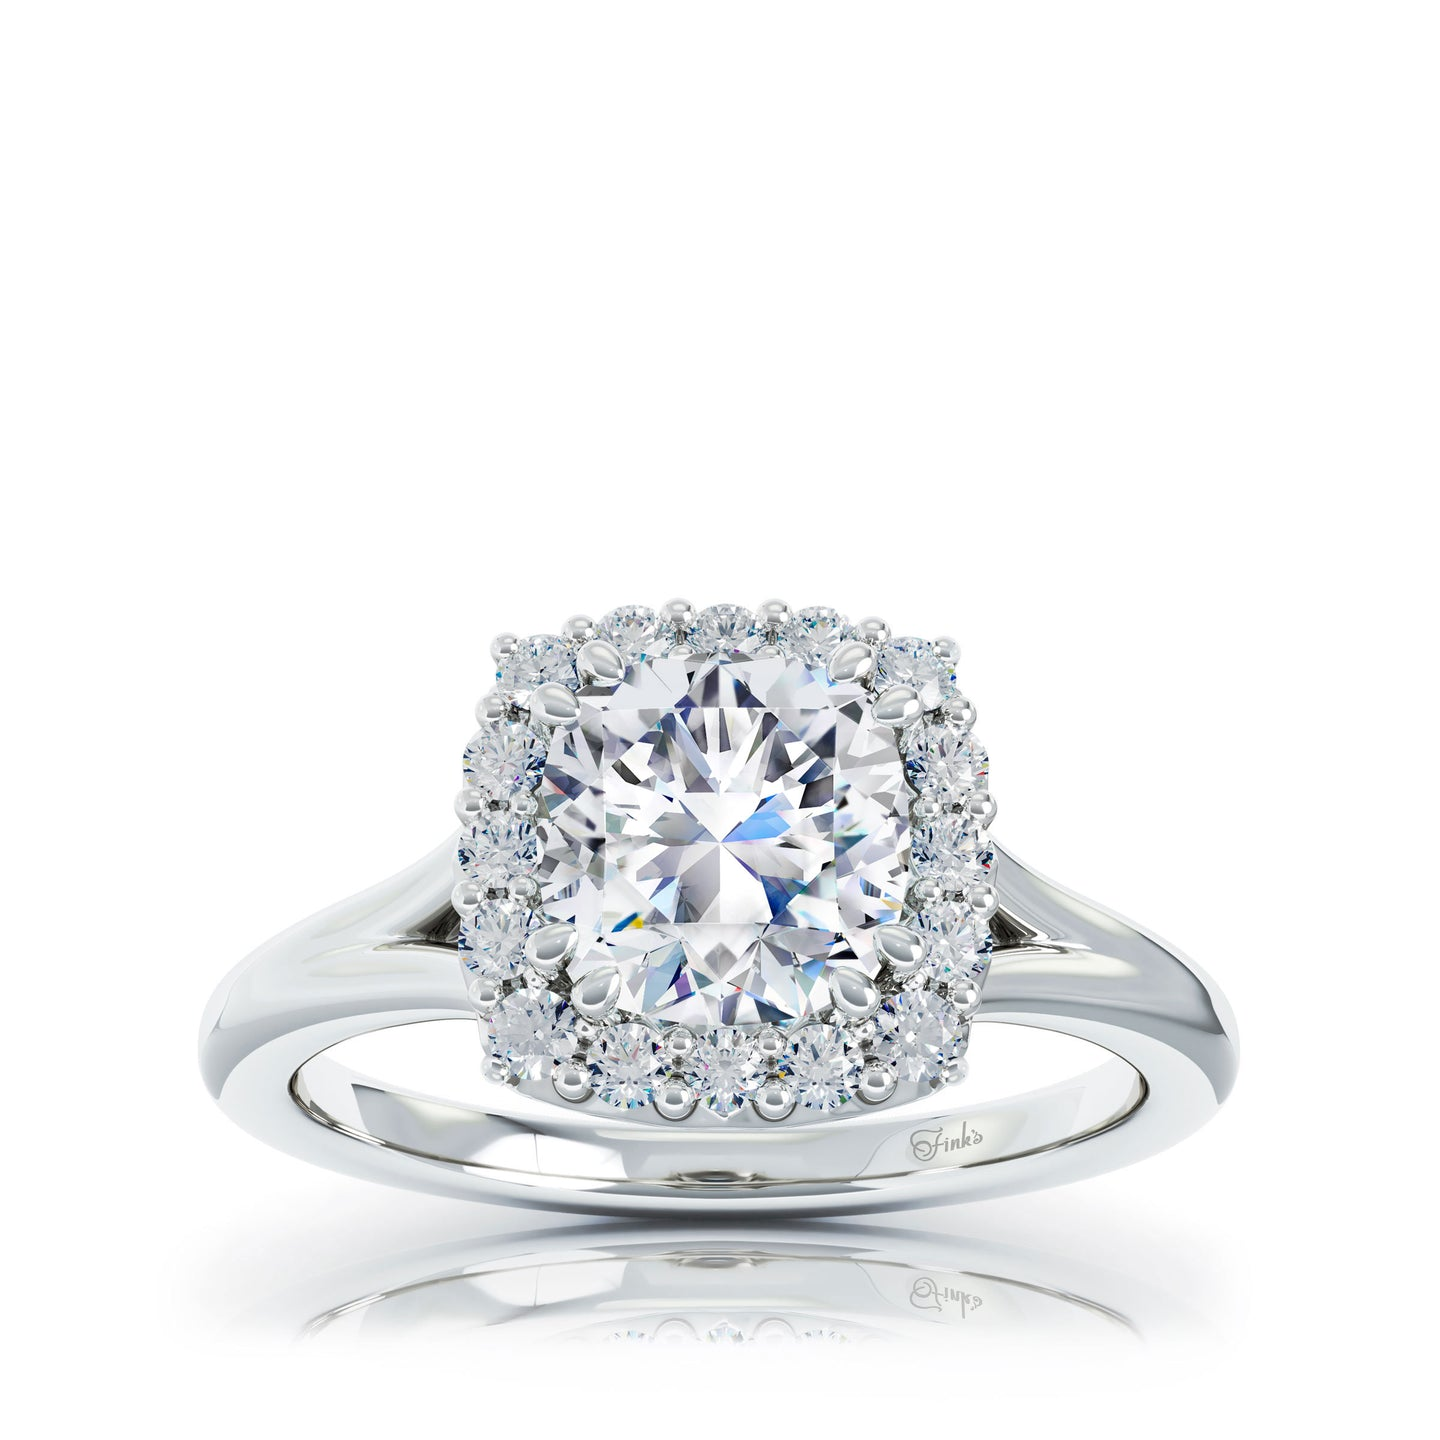 The Studio Collection FireCushion Diamond Halo and Classic Shank Engagement Ring